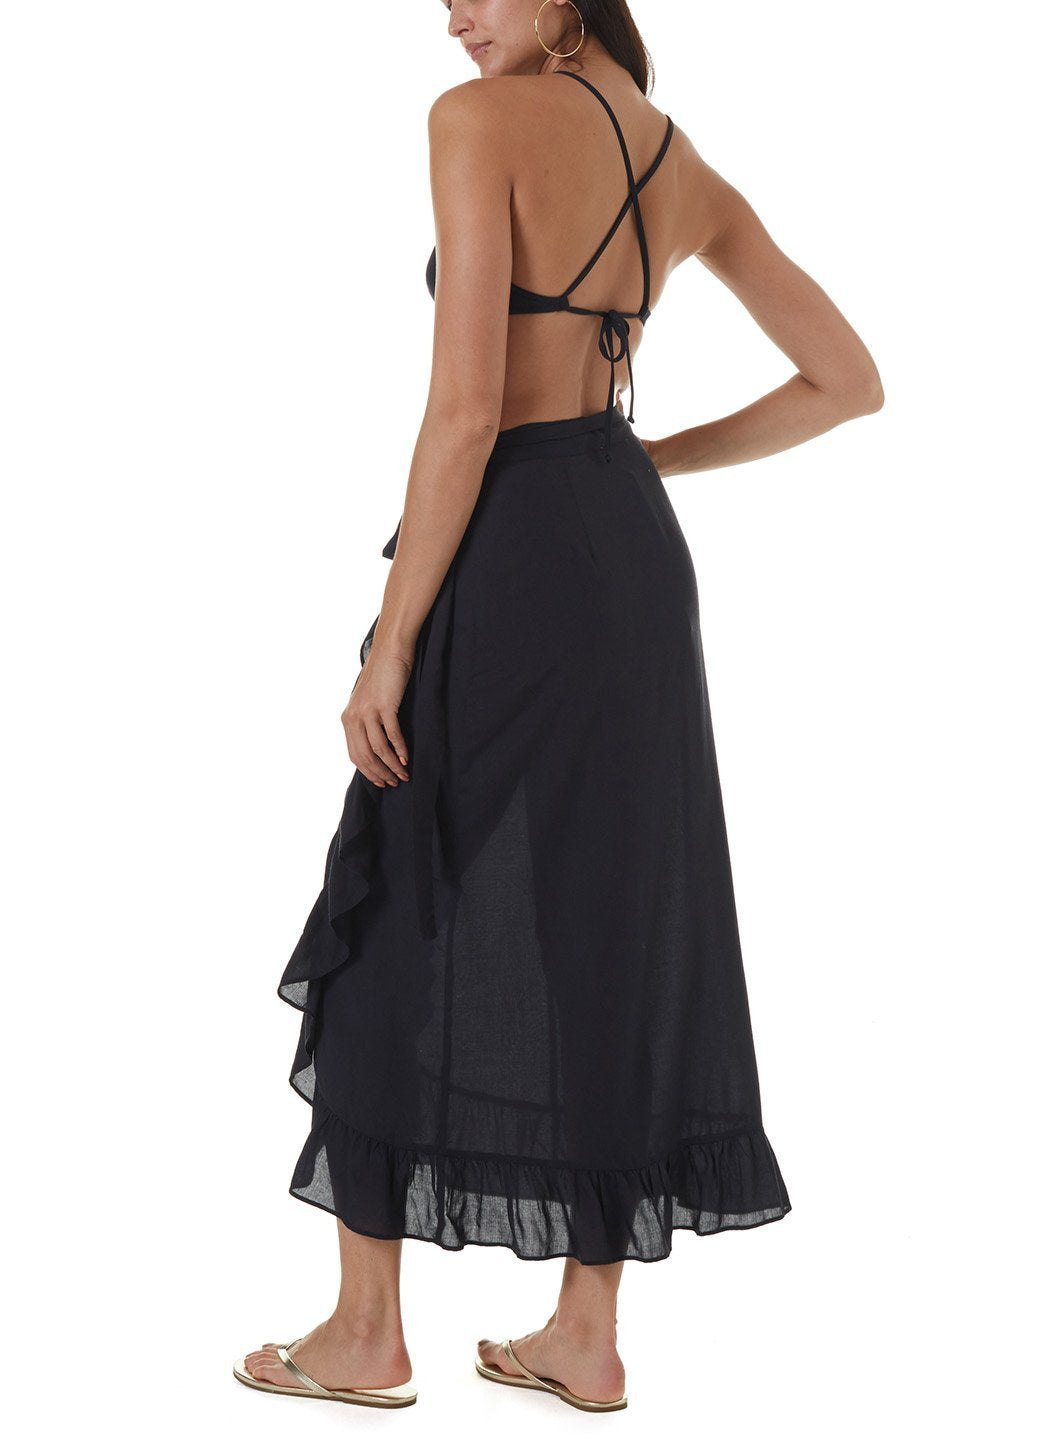 danni black long skirt